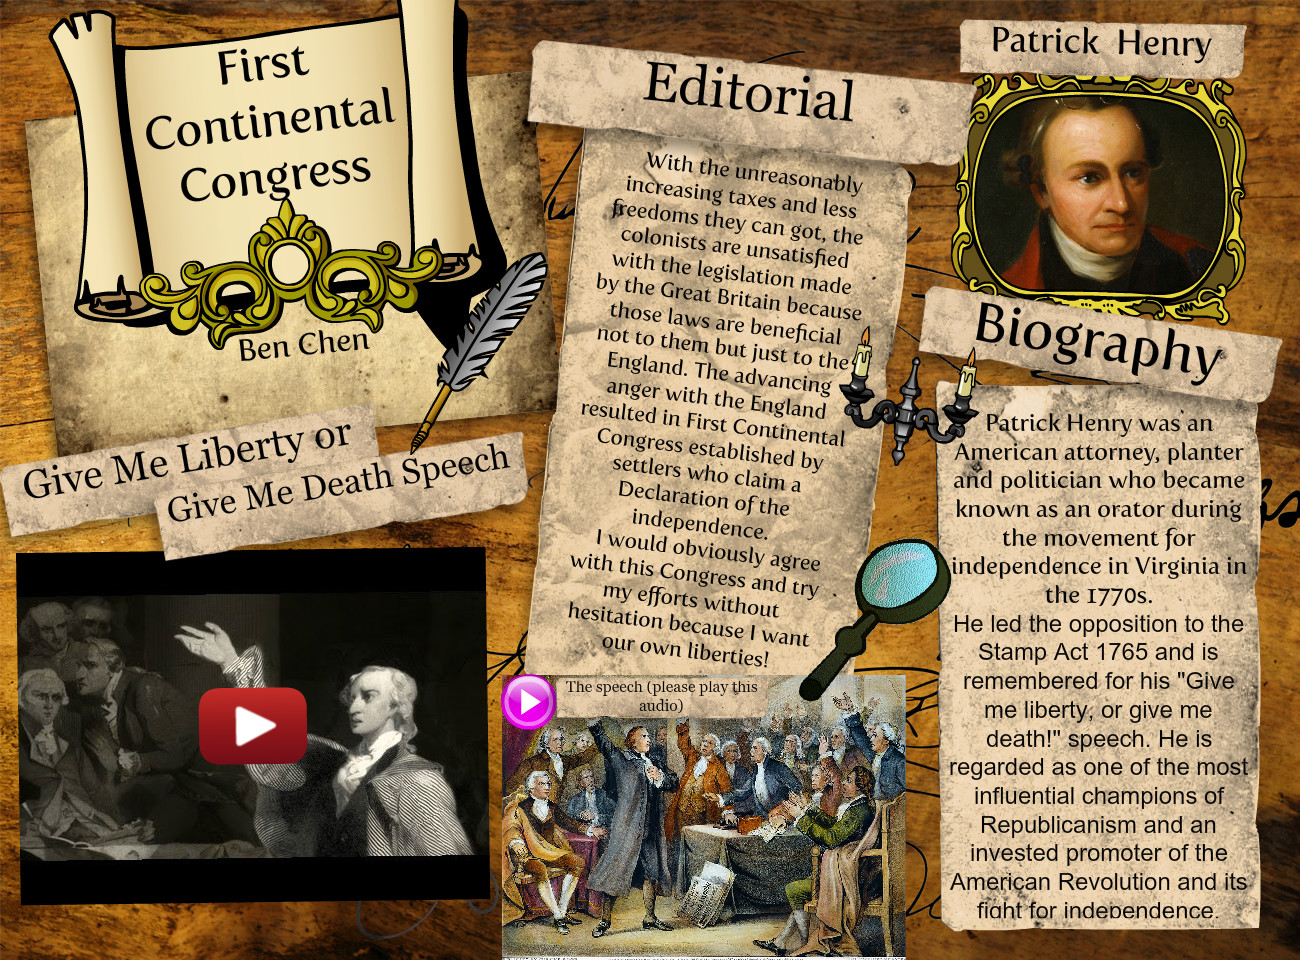 [2015] Xiaobang Chen: First continental congress